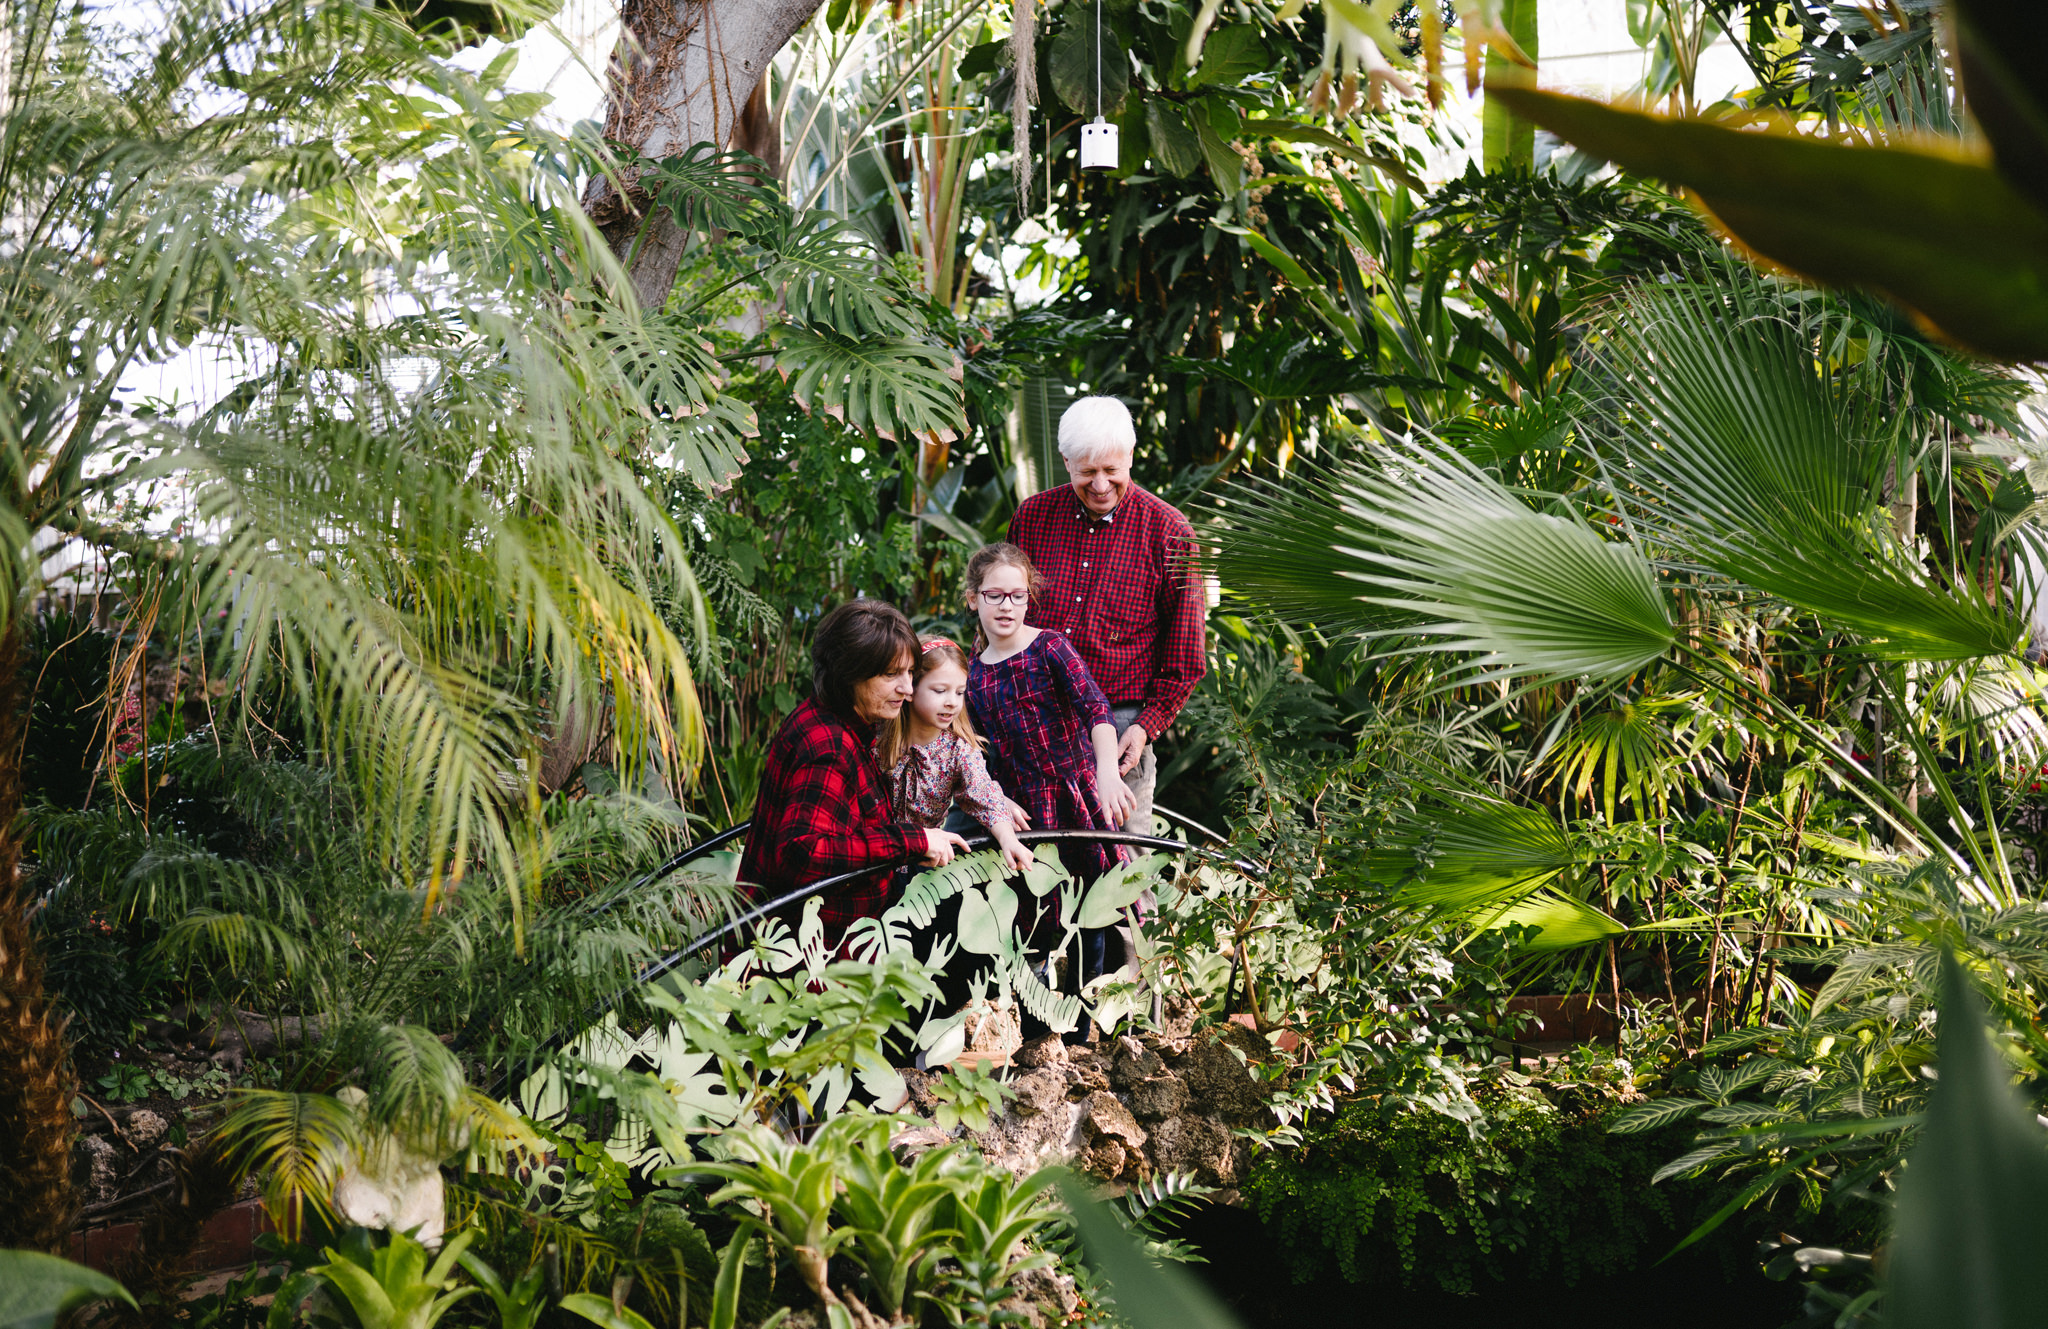 001-rempel-photography-chicago-wedding-inspiration-oak-park-conservatory-family-photo-session-bailey-forest-park-berwin-area-photographers.jpg